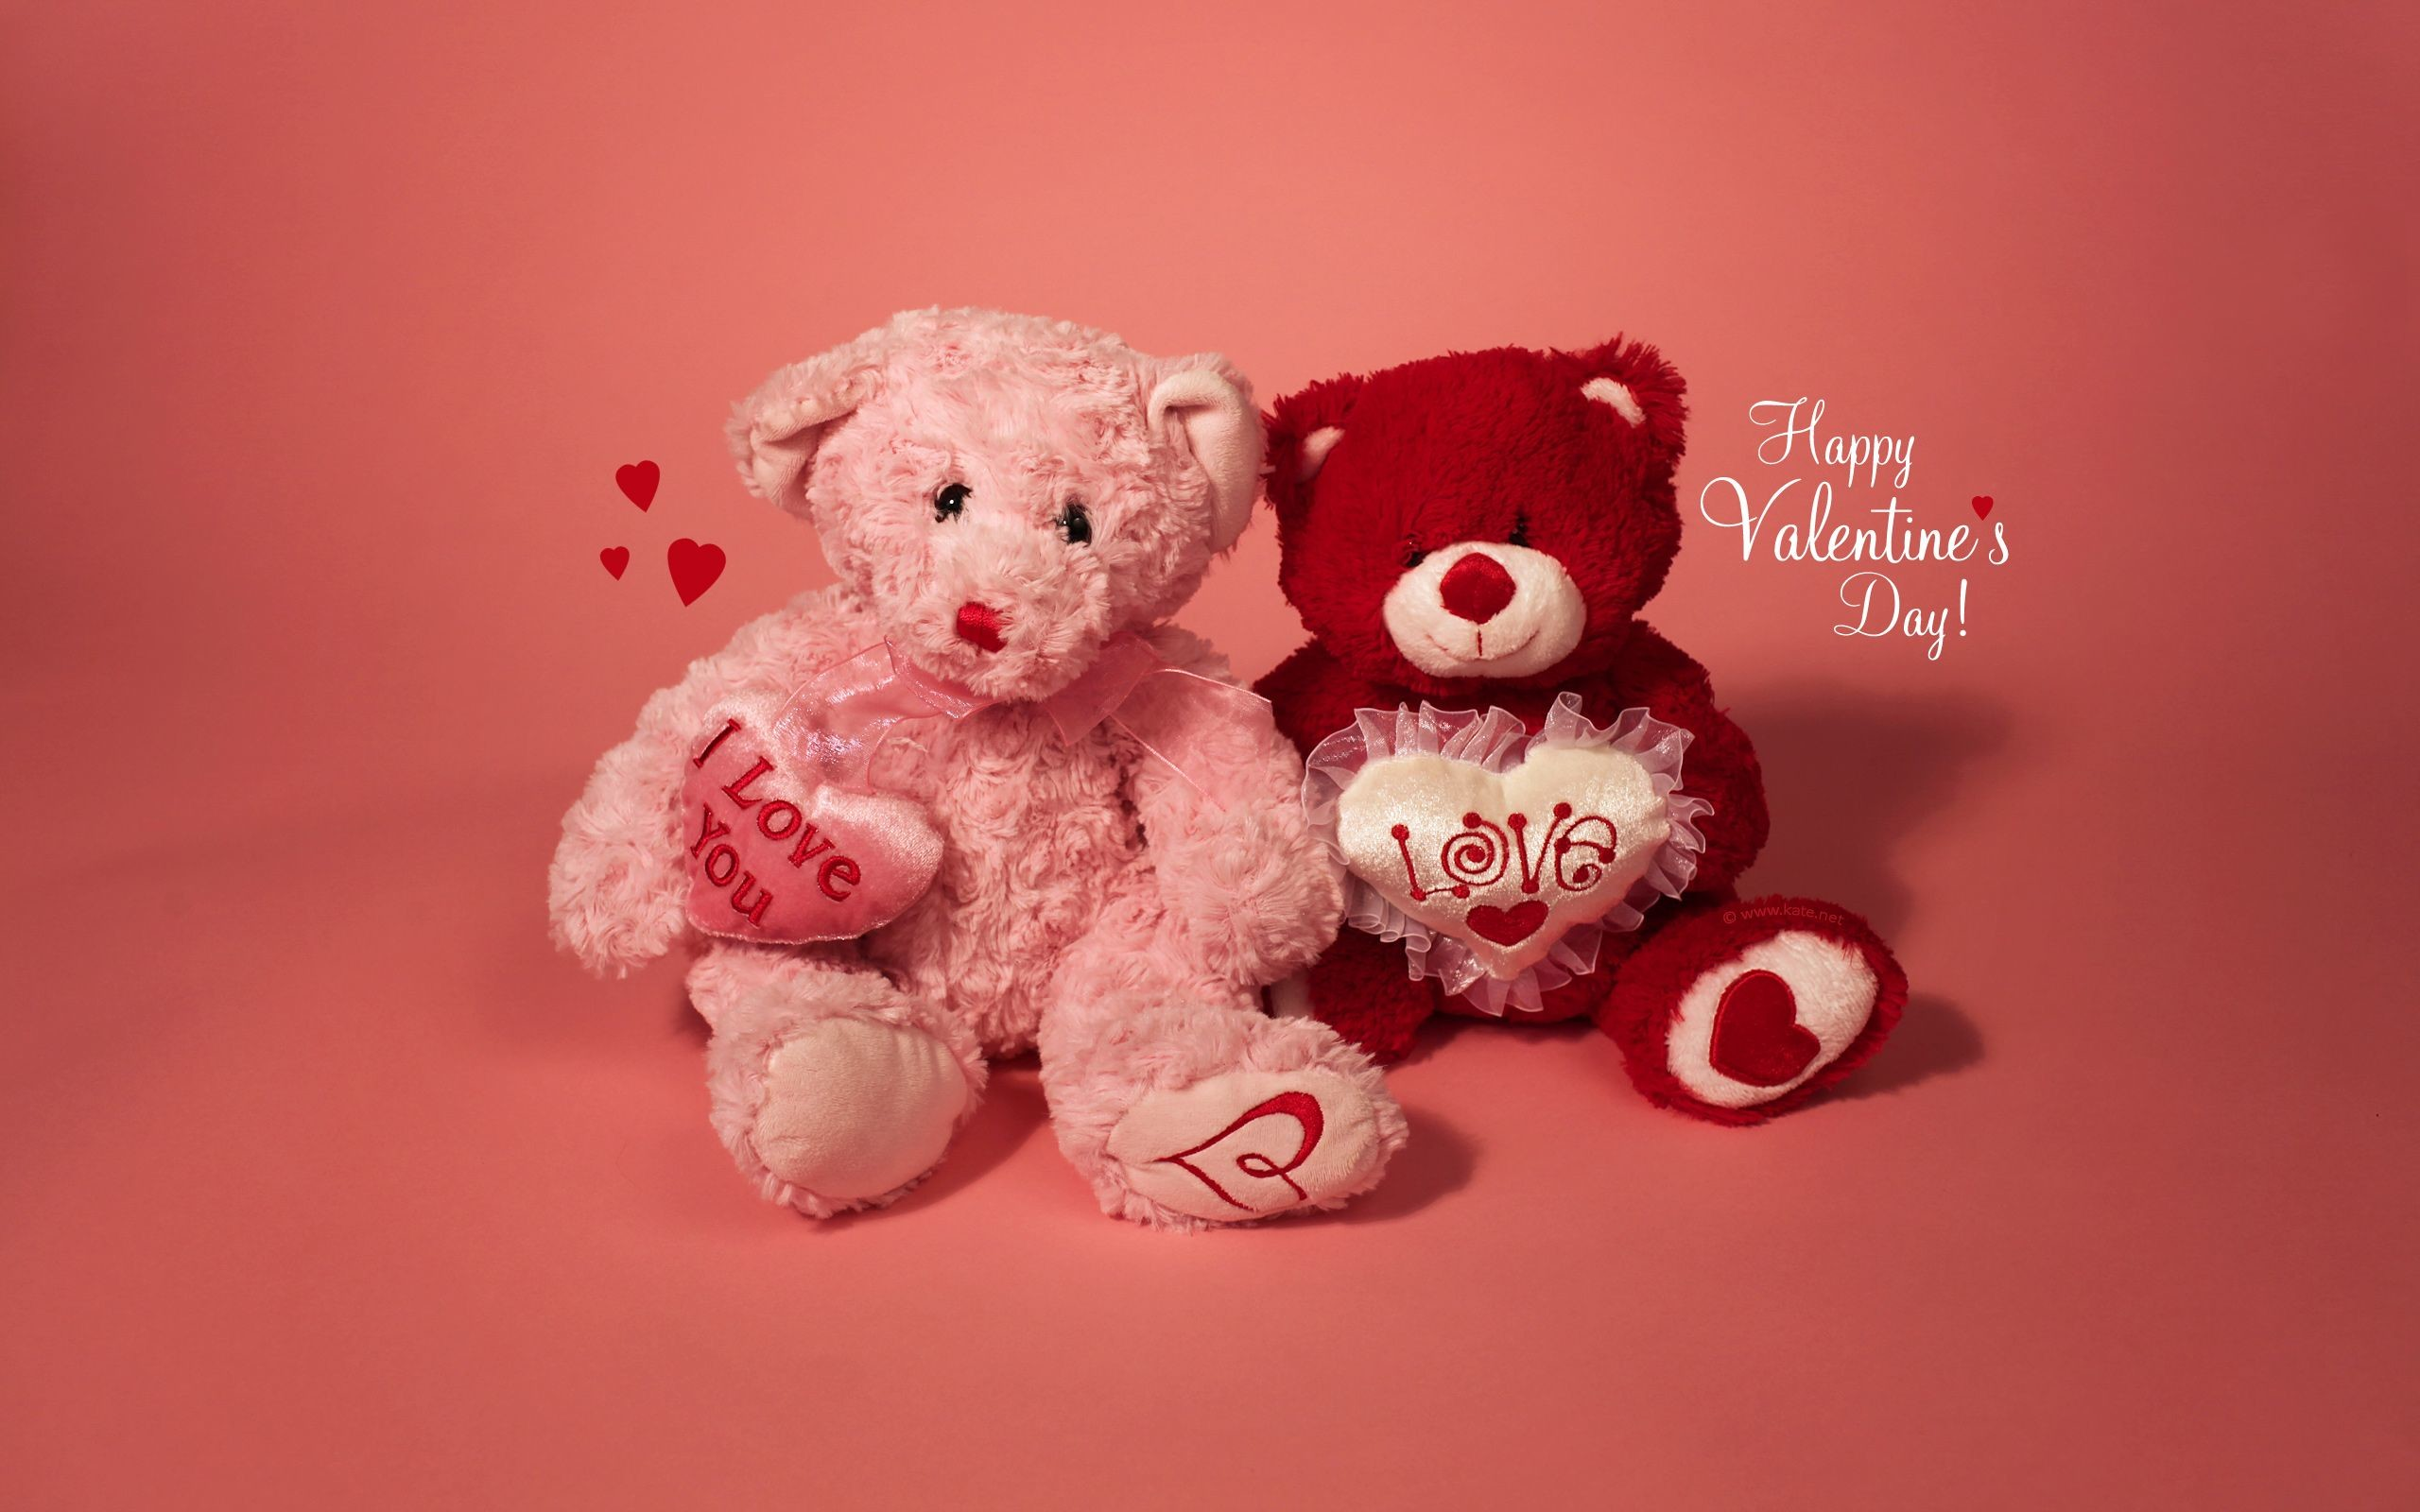 Cute Teddy Bear Wallpapers 61 Pictures